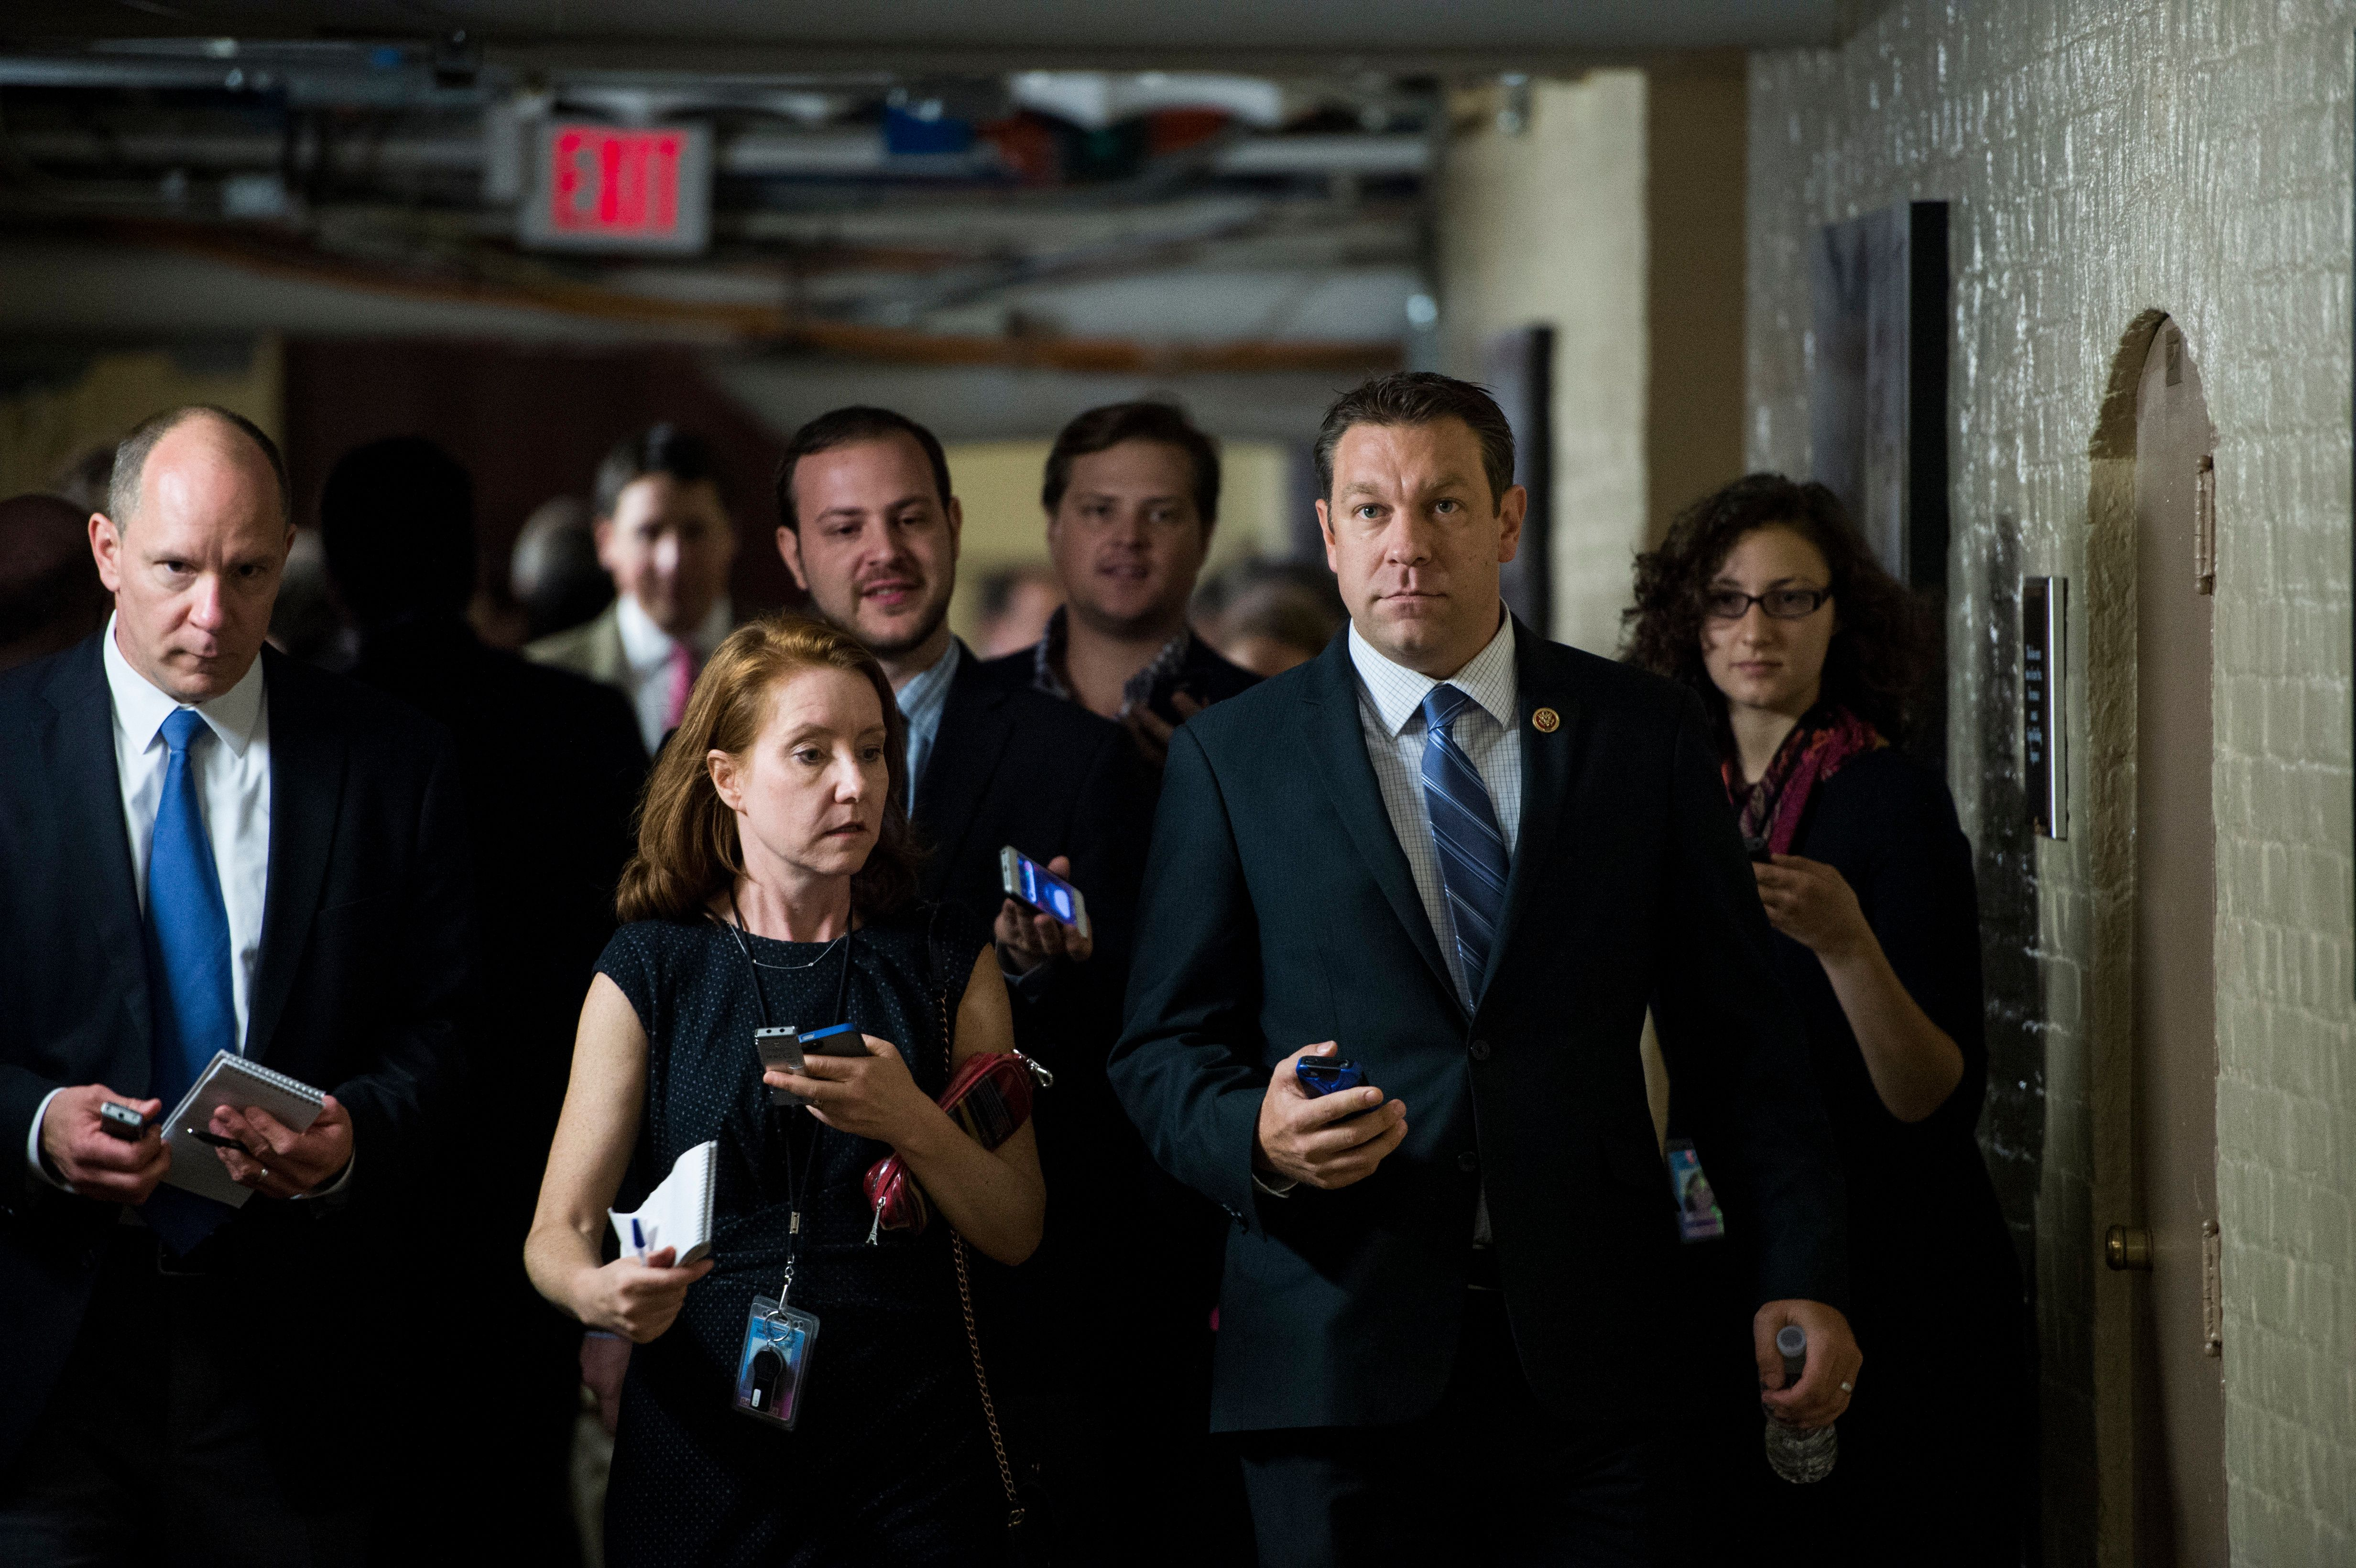 UNITED STATES - OCTOBER 4: Rep. Trey Radel, R-Fla., speaks with reporters as he leaves the House Republican Conference meeting in the basement of the Capitol on Friday, Oct. 4, 2013.  (Photo By Bill Clark/CQ Roll Call)